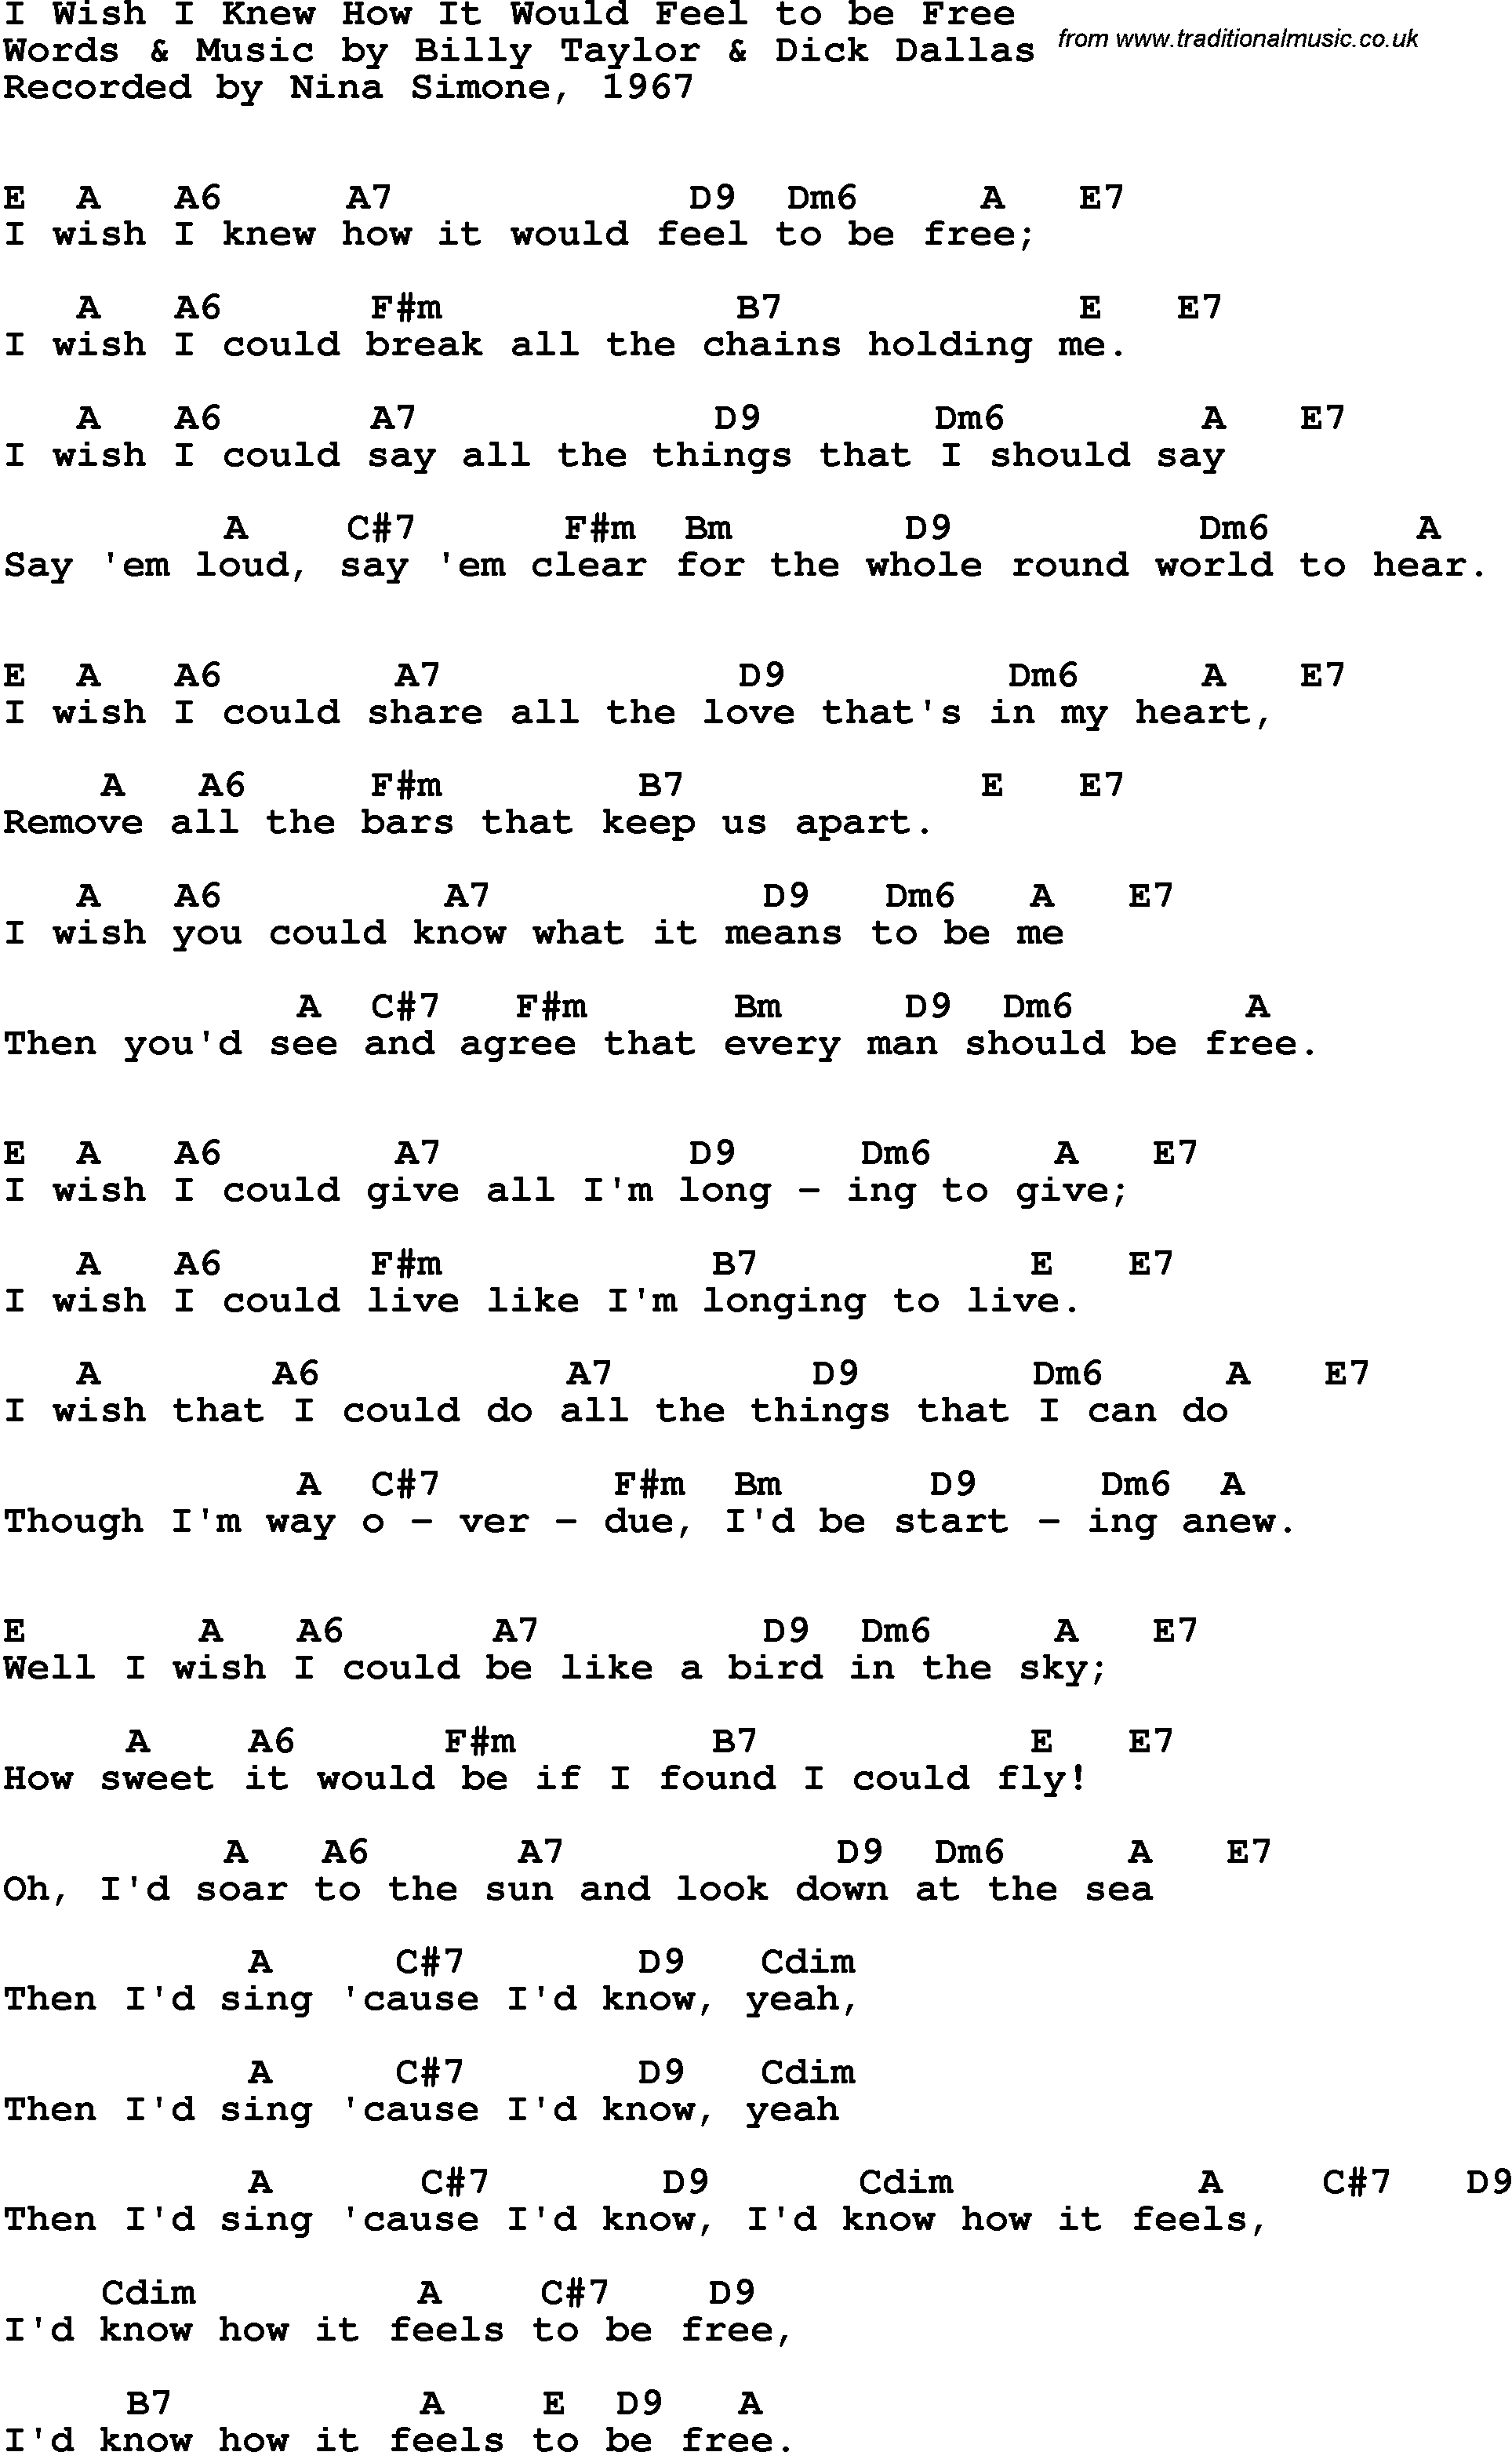 Song Lyrics With Guitar Chords For I Wish I Knew How It Would Feel To Be